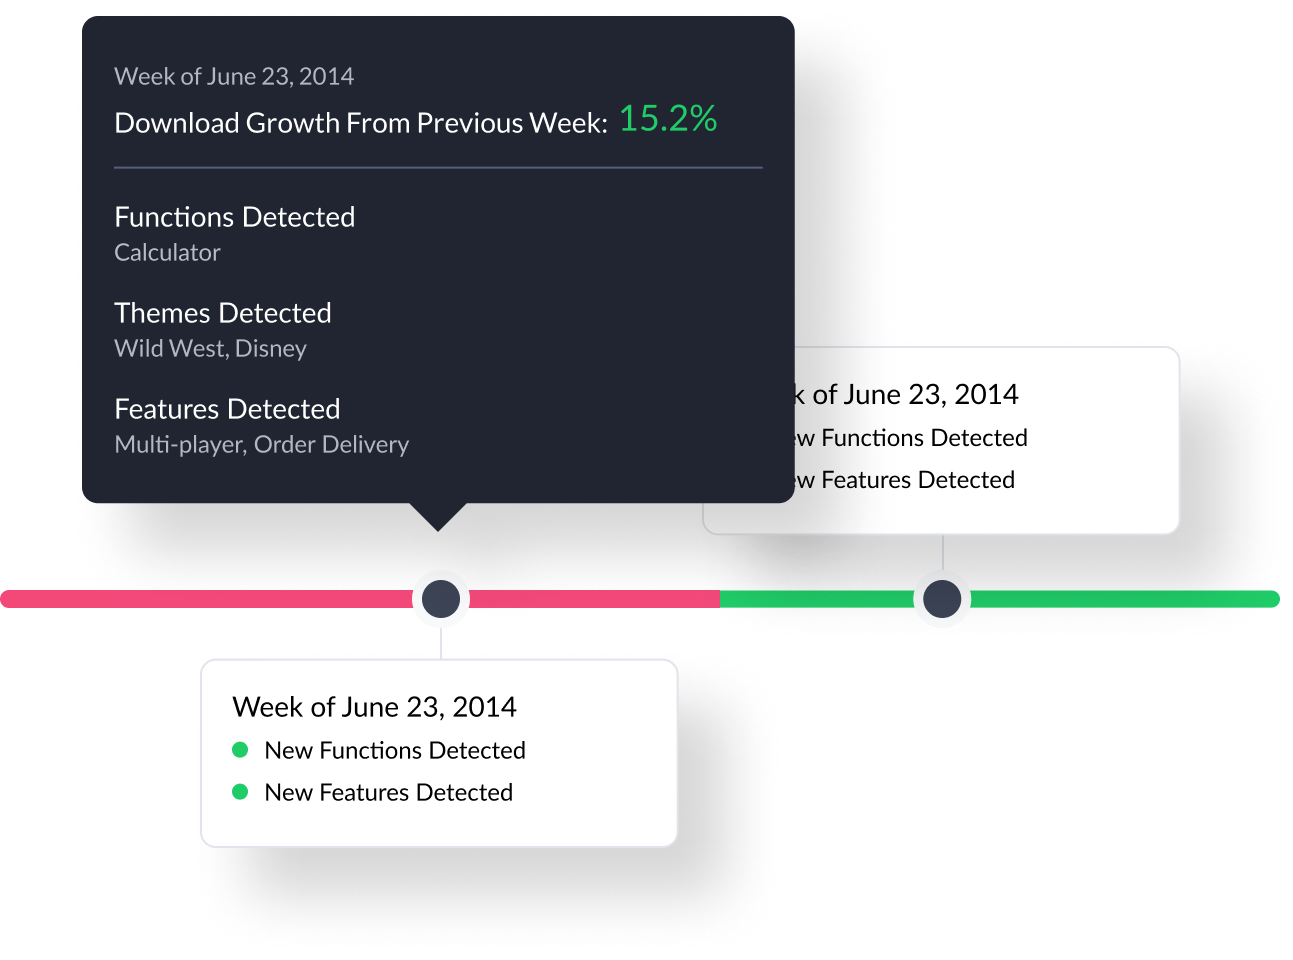 Analyze how new features impact performance to identify new product opportunities